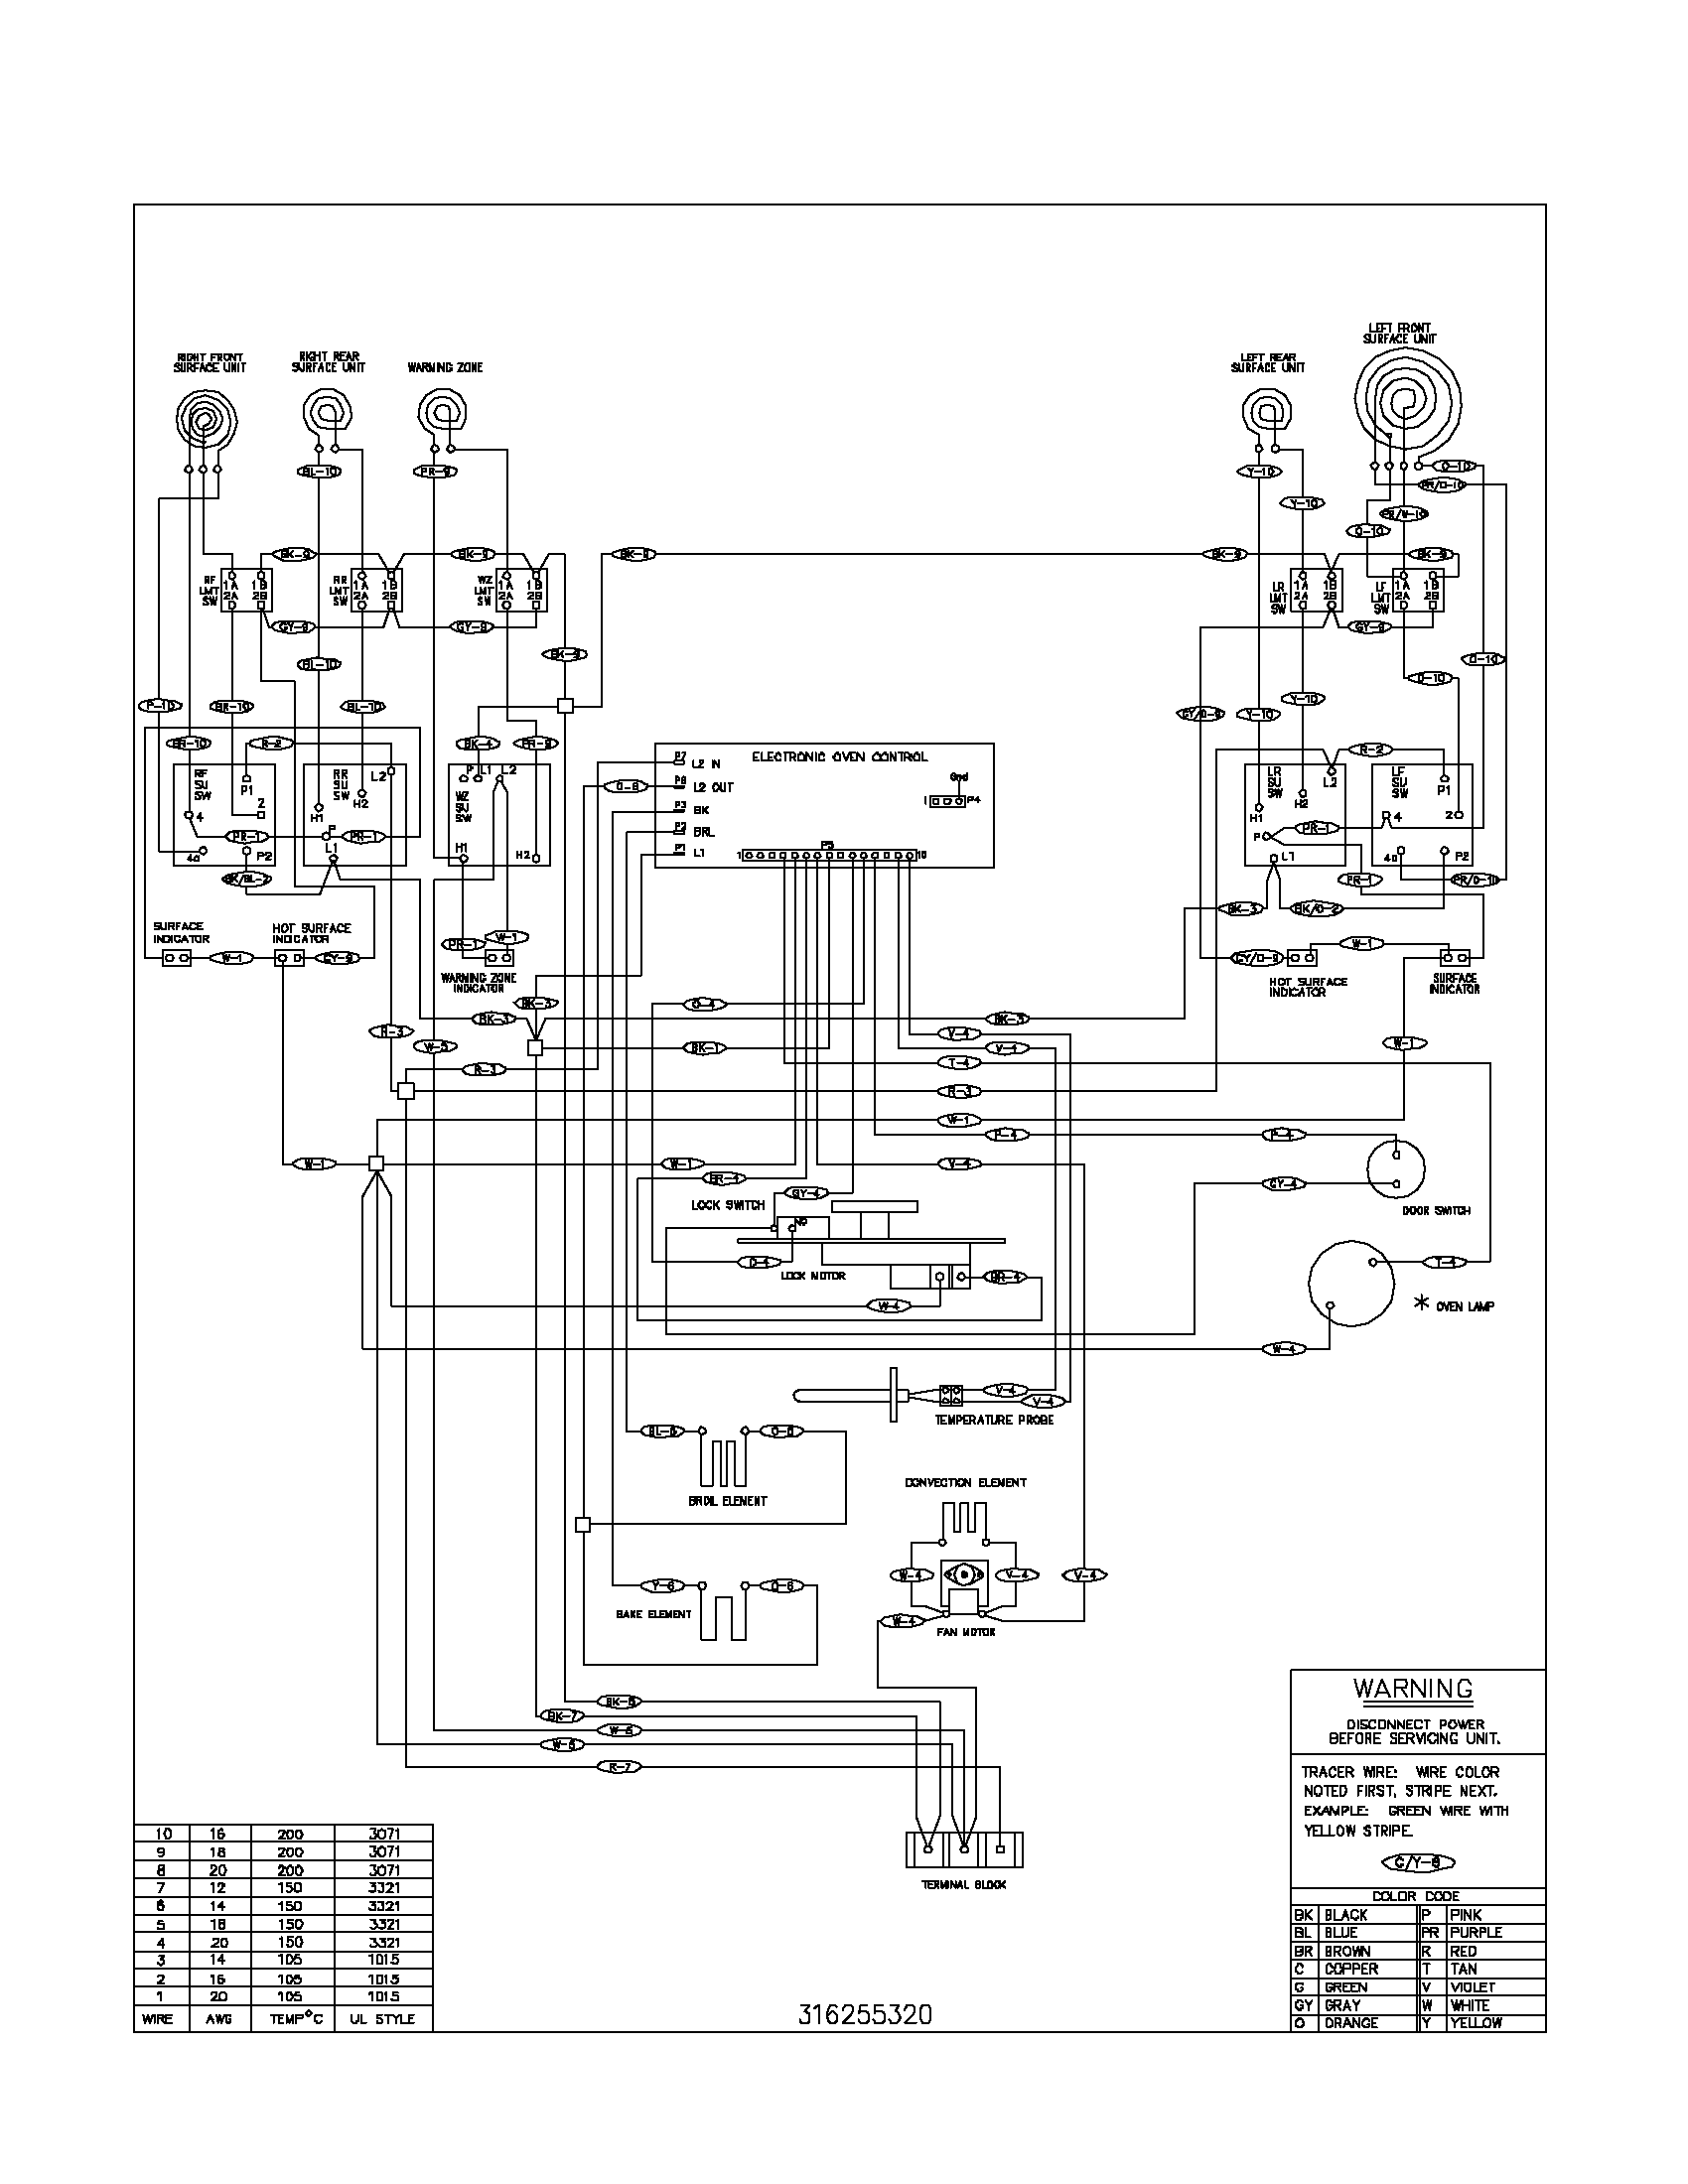 Whirlpool fefl88acc electric range timer stove clocks and fefl88acc electric range wiring diagram parts diagram asfbconference2016 Images